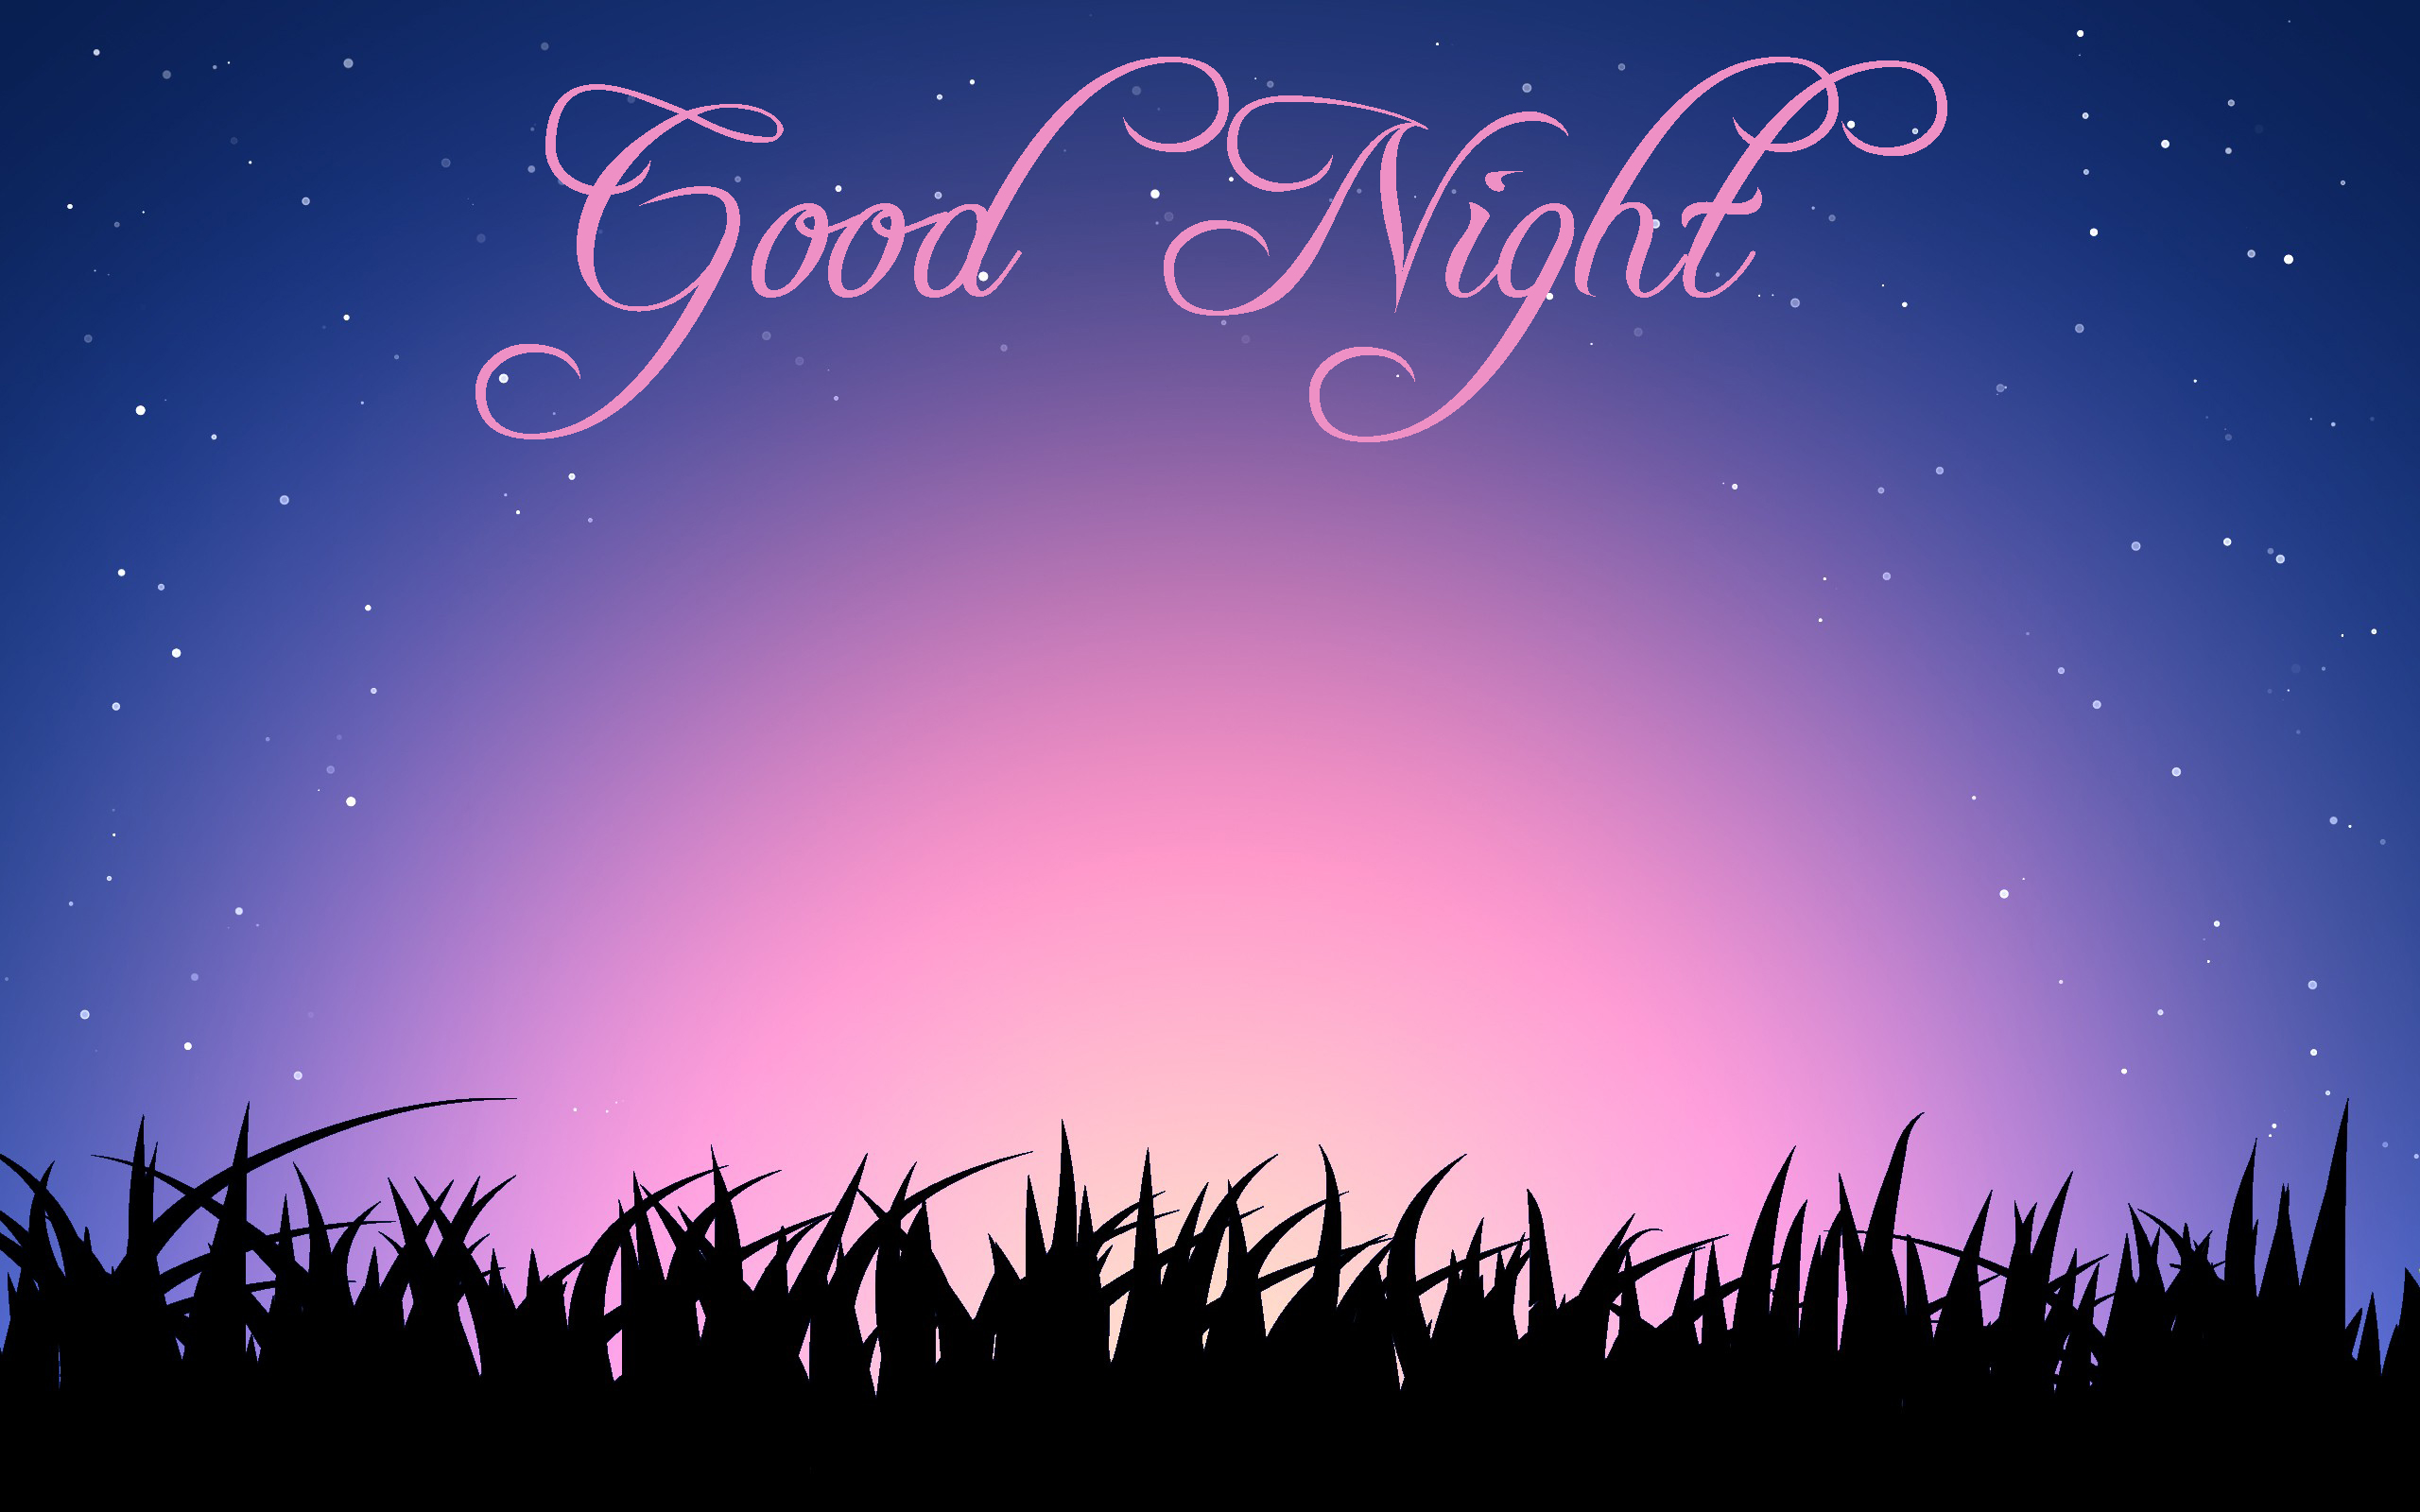 Good Night Quotes Wallpapers | Best Good Night Quotes Picture